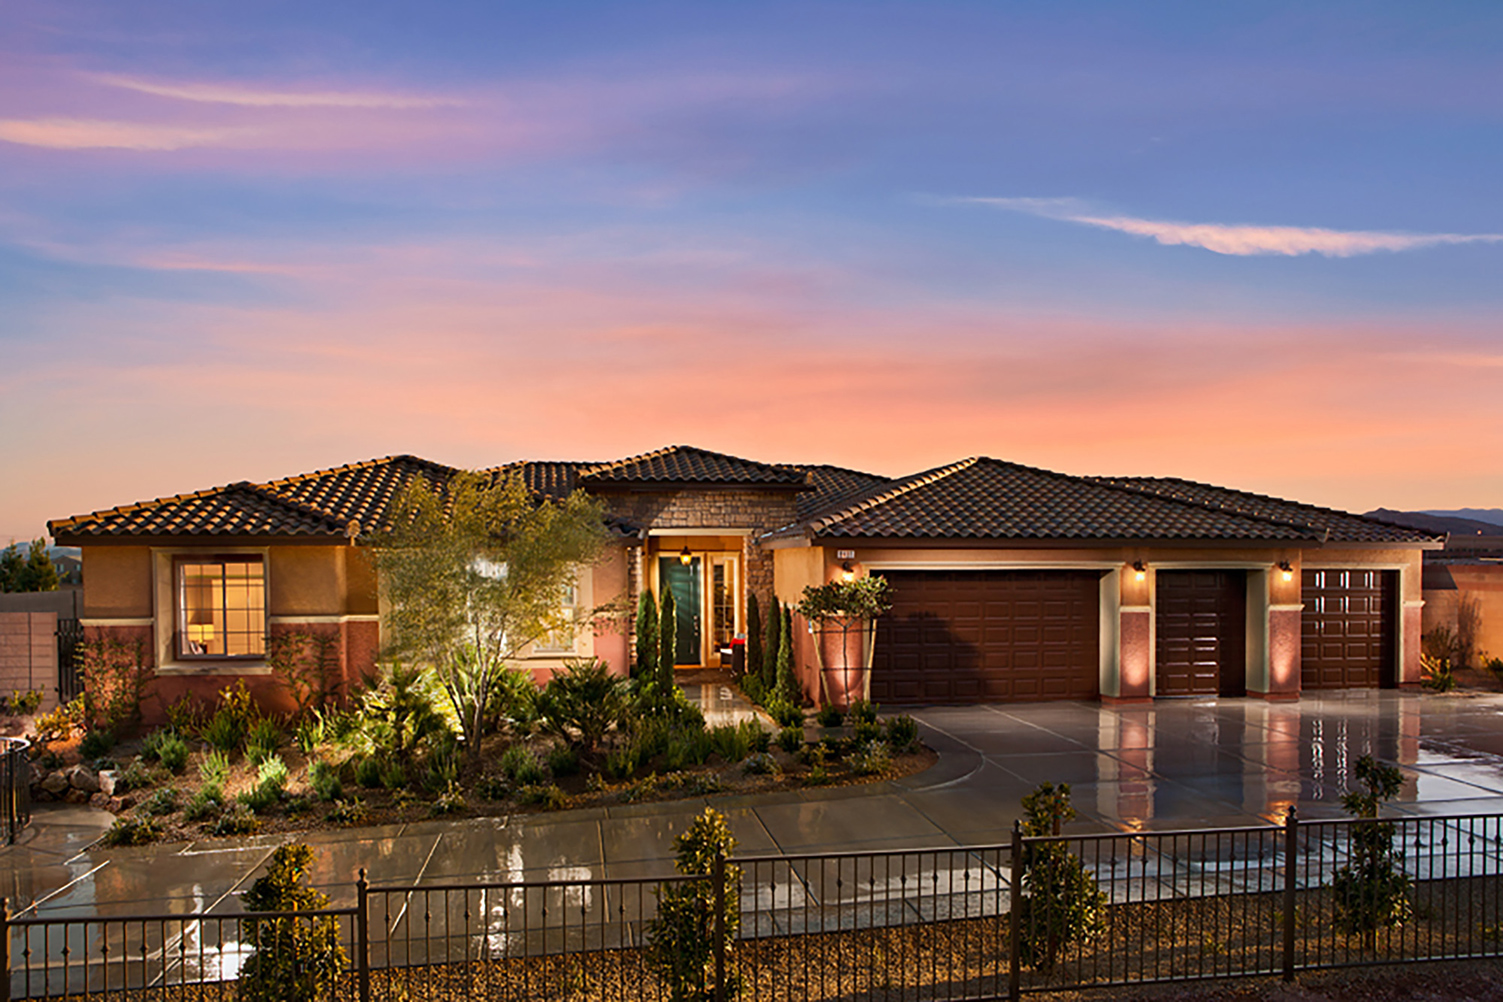 New Homes For Sale Summerlin Nevada